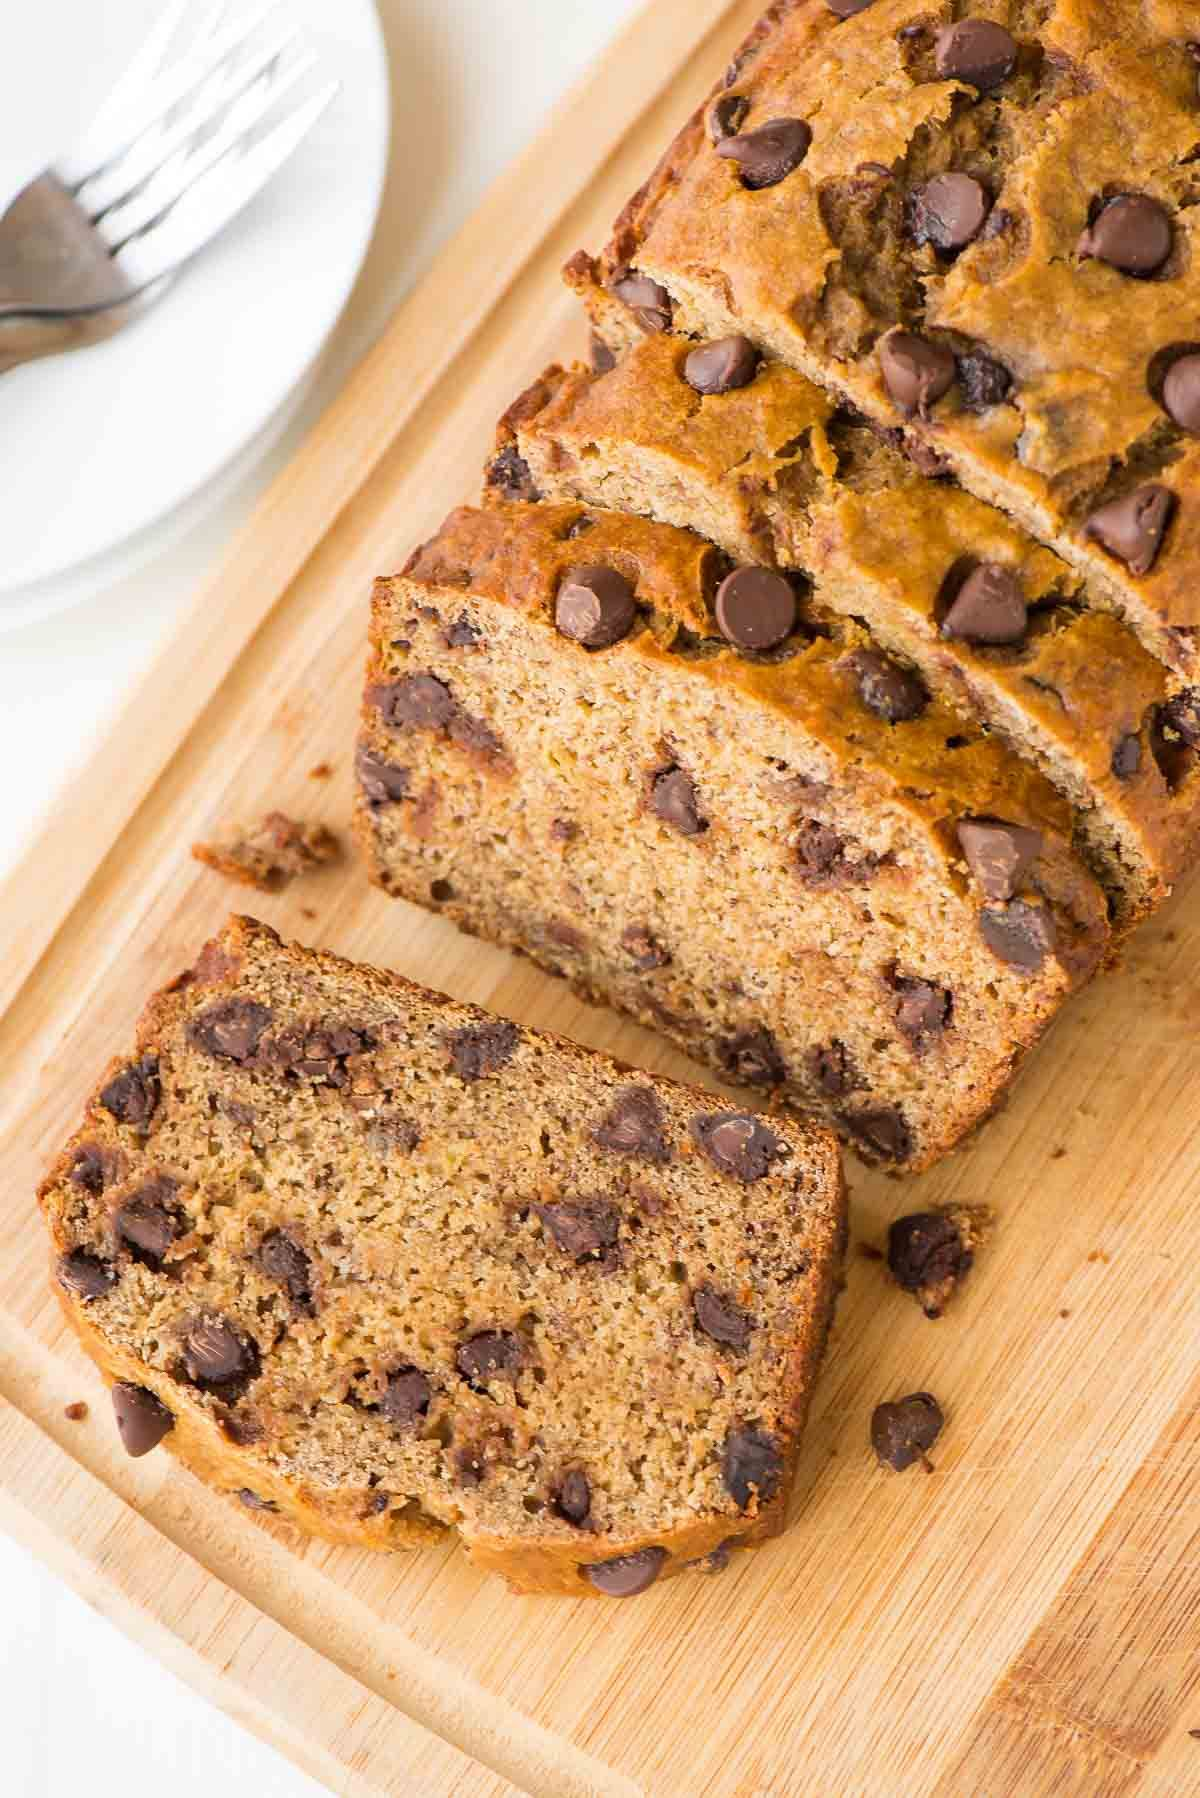 Almost fat free healthy banana bread with chocolate chips for a almost fat free healthy banana bread with chocolate chips for a little indulgence the forumfinder Choice Image